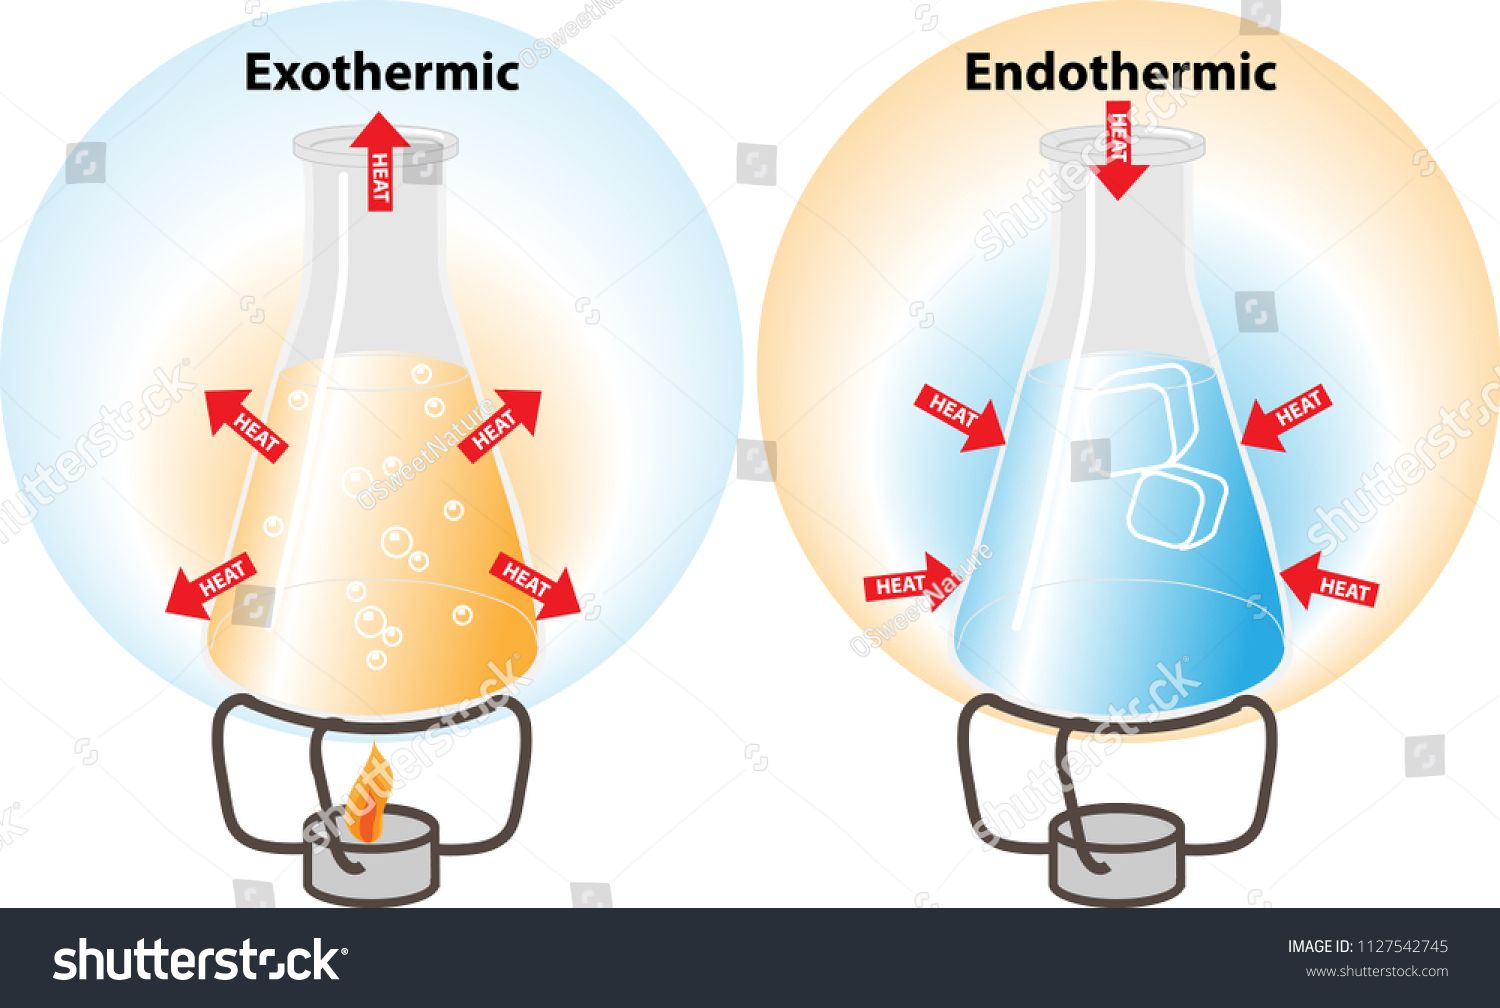 Endothermic And Exothermic Reactions As Shown In Chemical